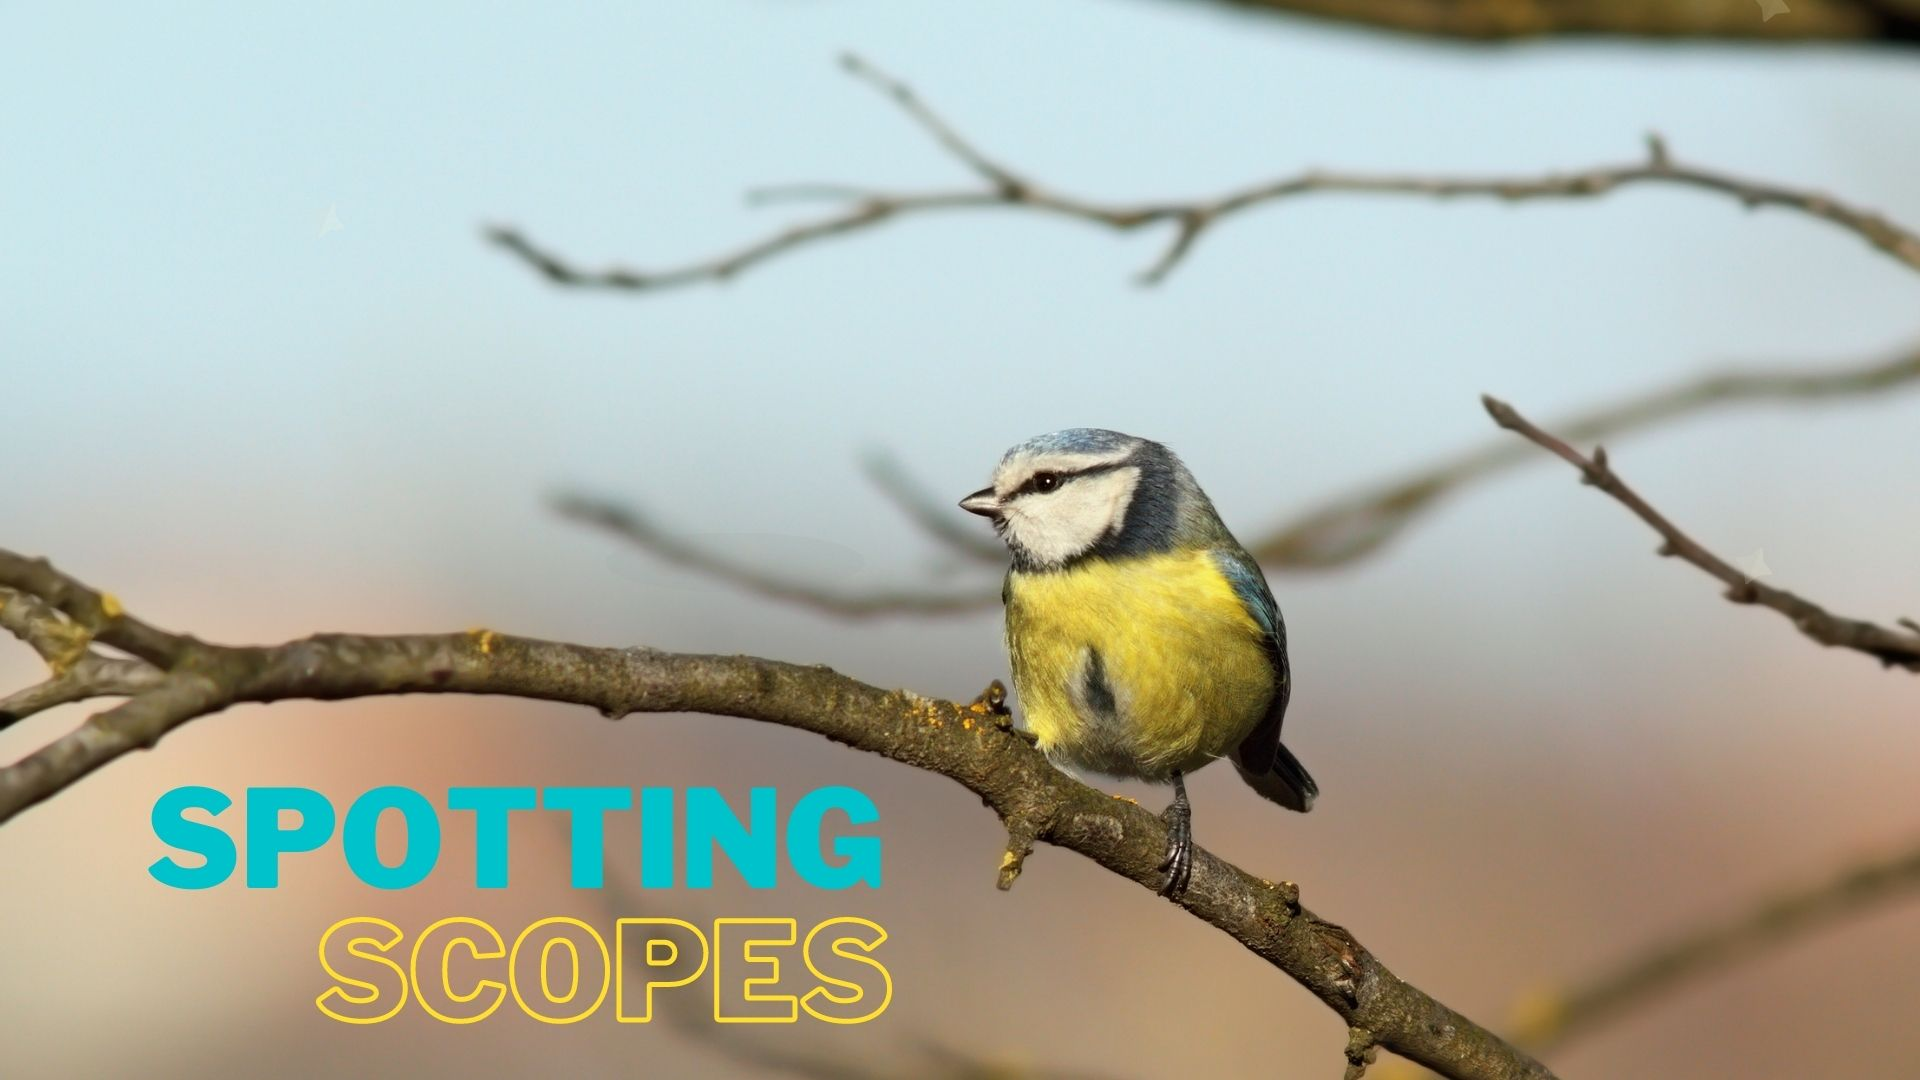 Best Spotting Scopes for bird watching and plane spotting